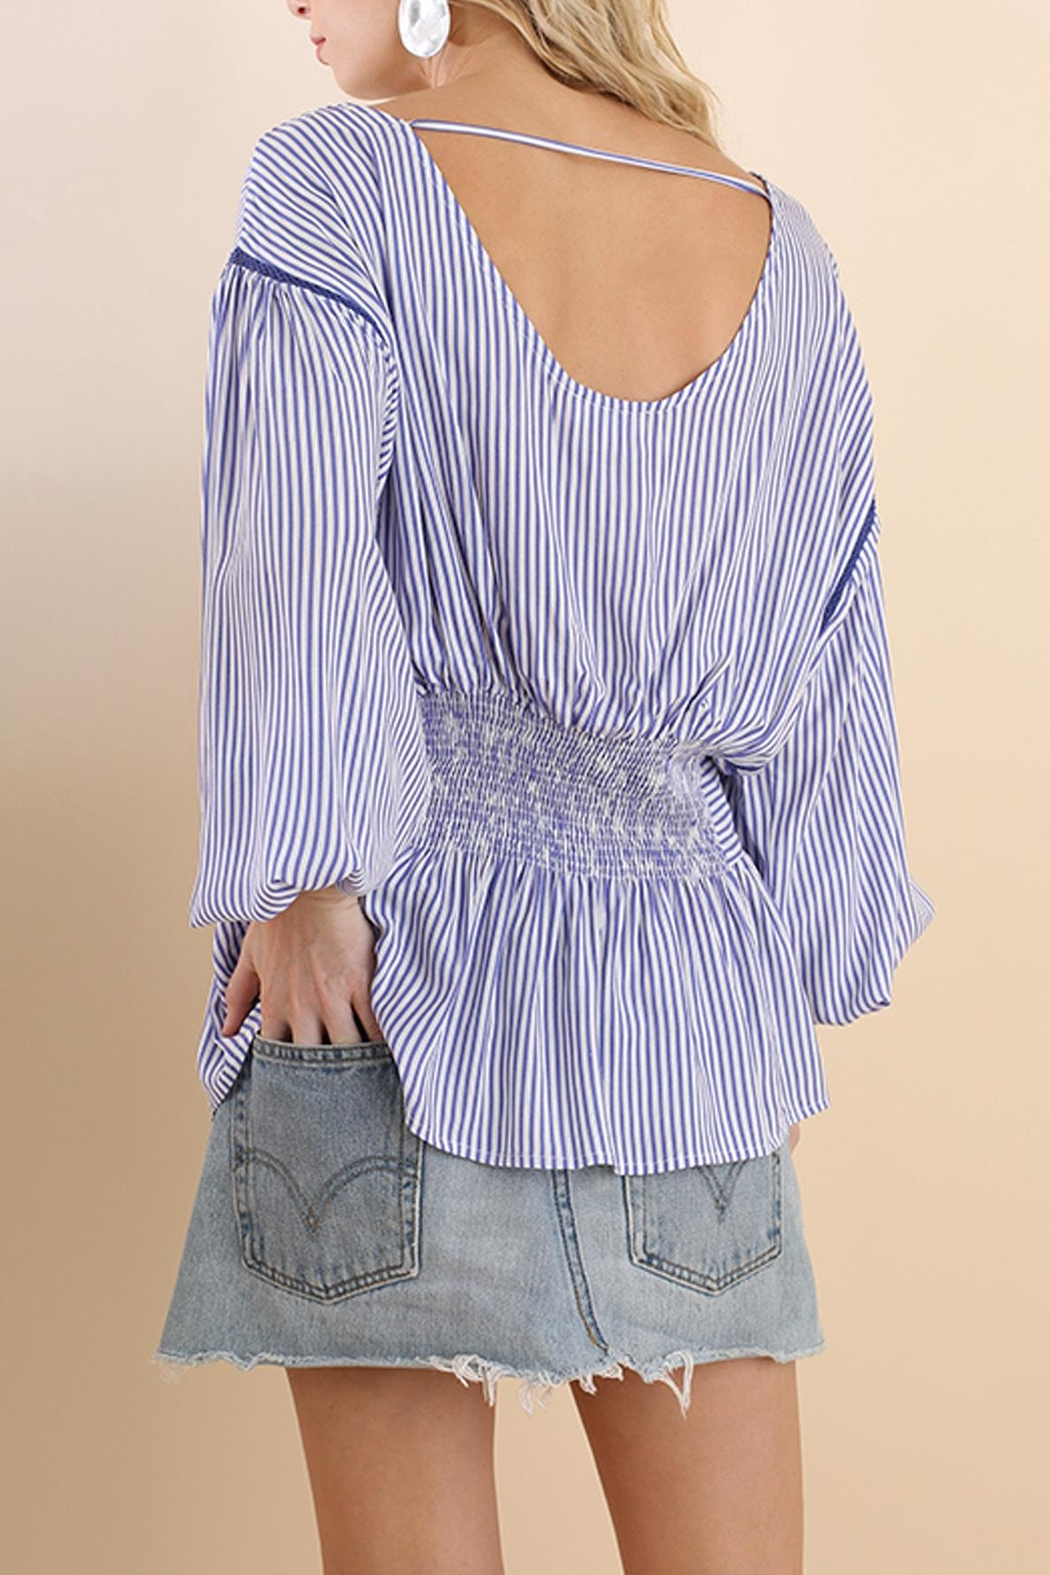 Umgee USA Striped Belted Top - Back Cropped Image